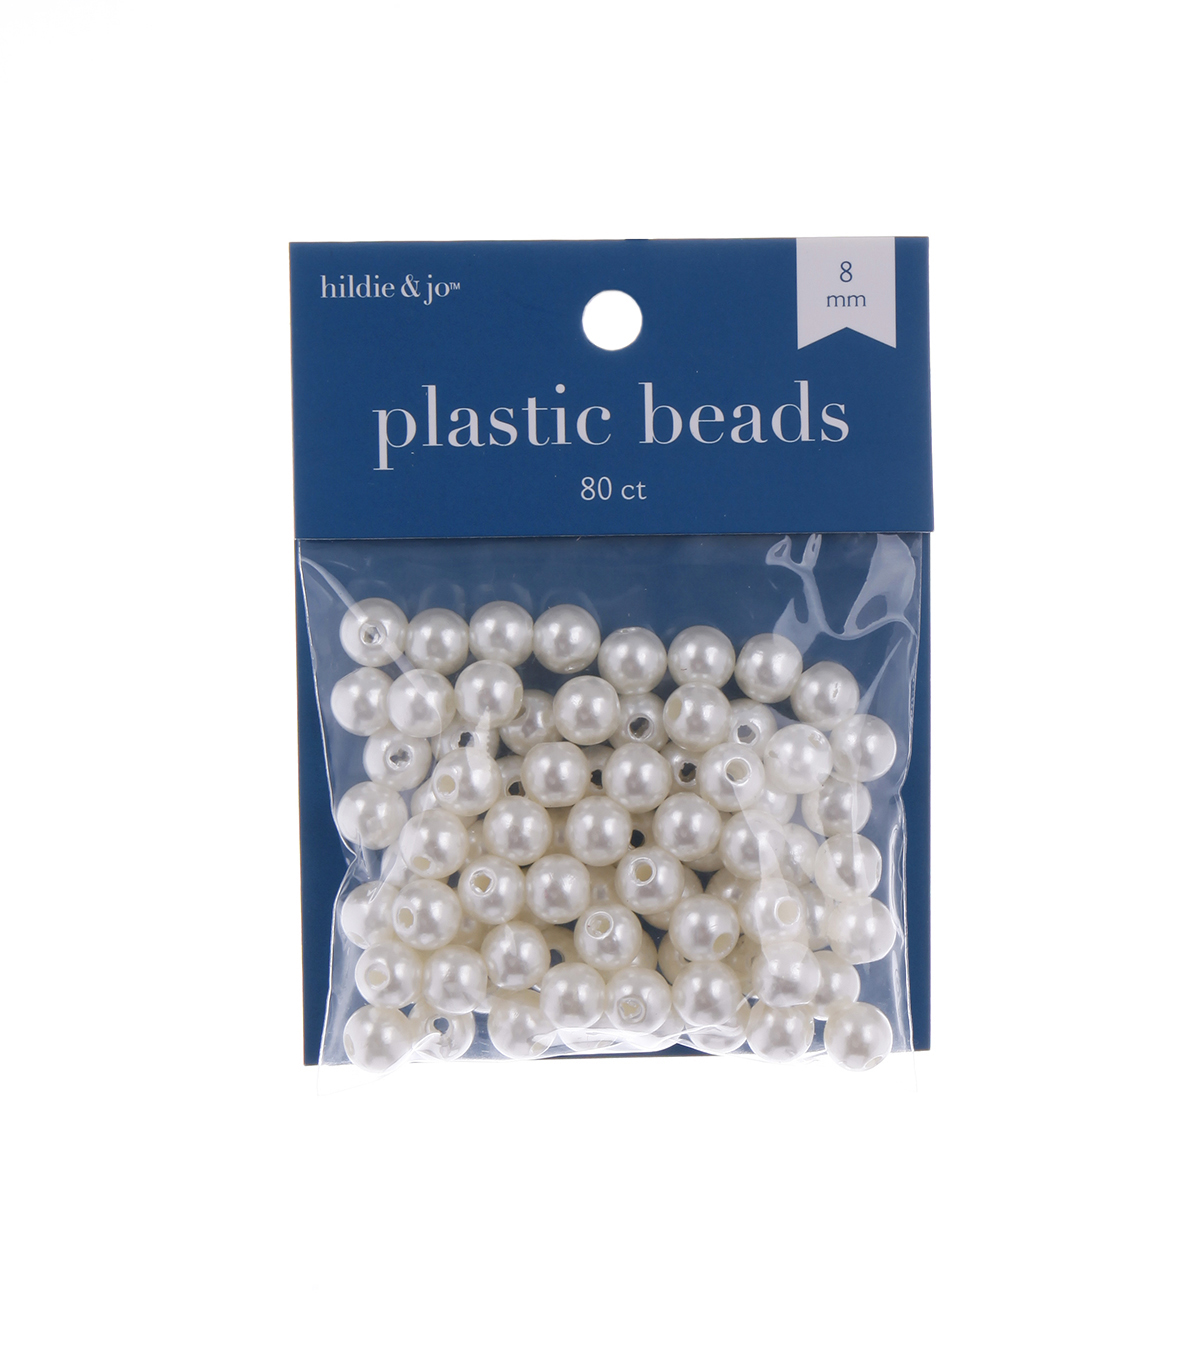 8mm Round Pearl Beads, Cream Colored, 80pcs.